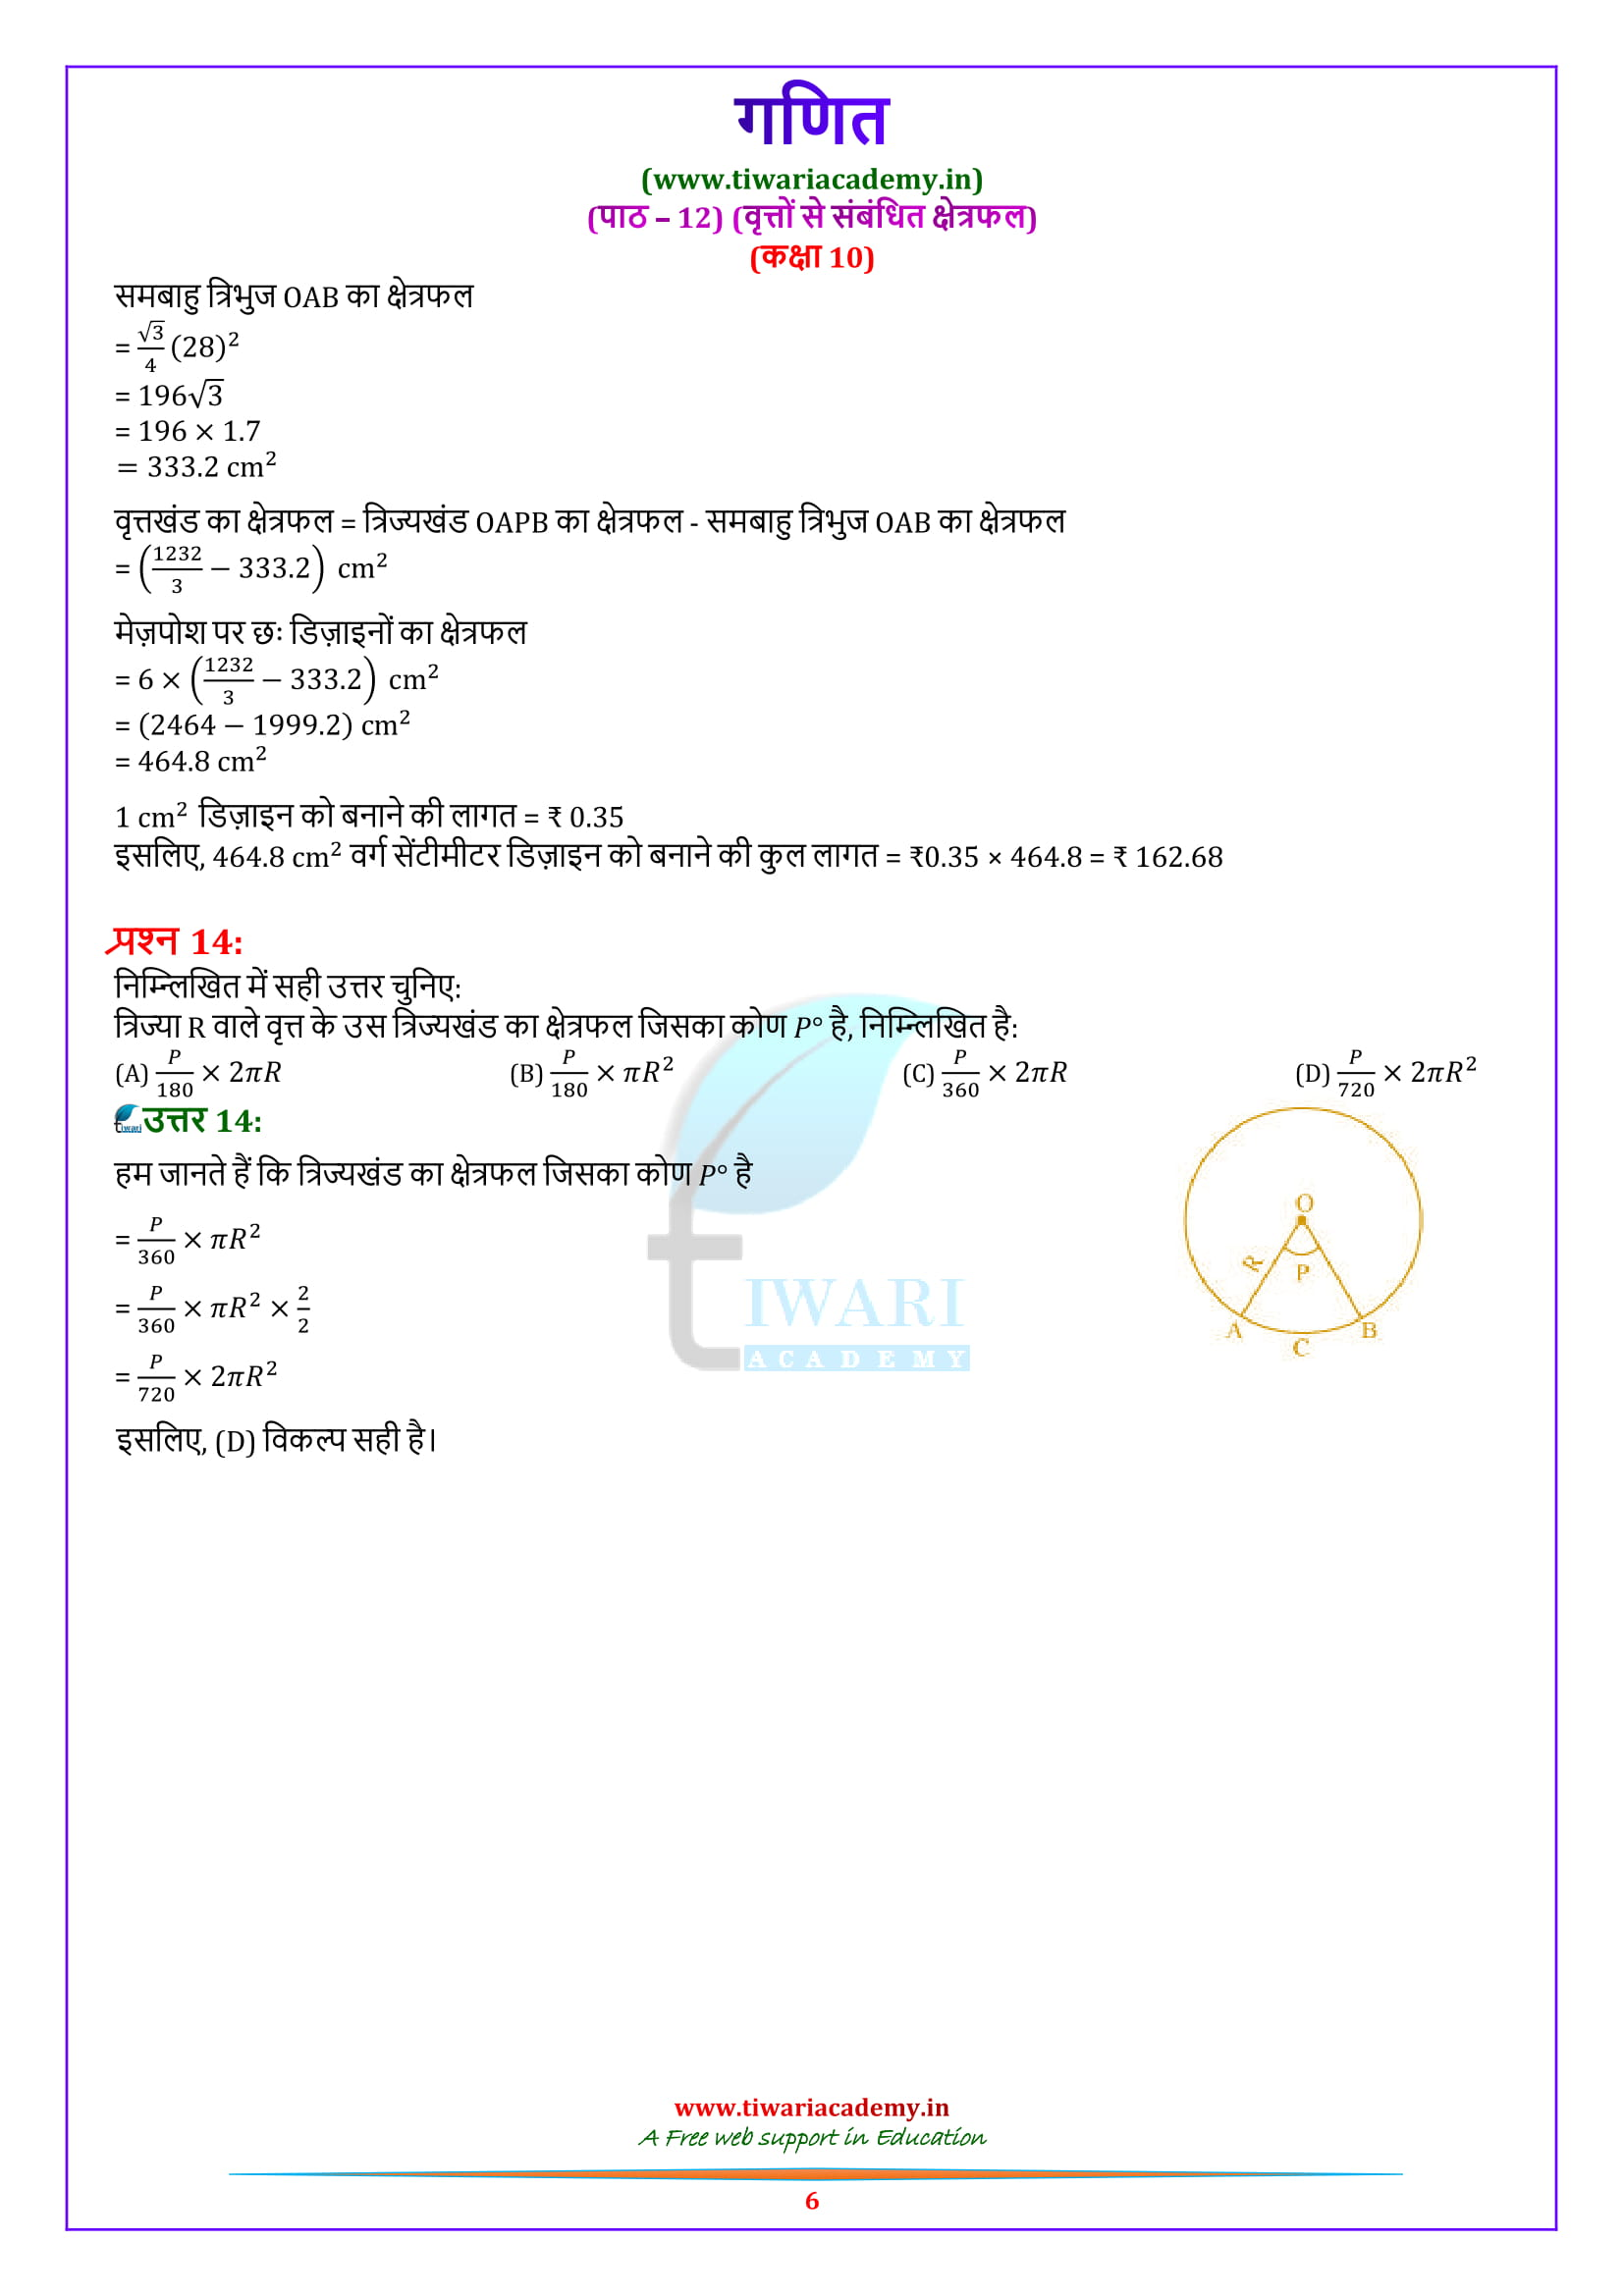 Class 10 Maths Exercise 12.2 Solutions download in hindi pdf